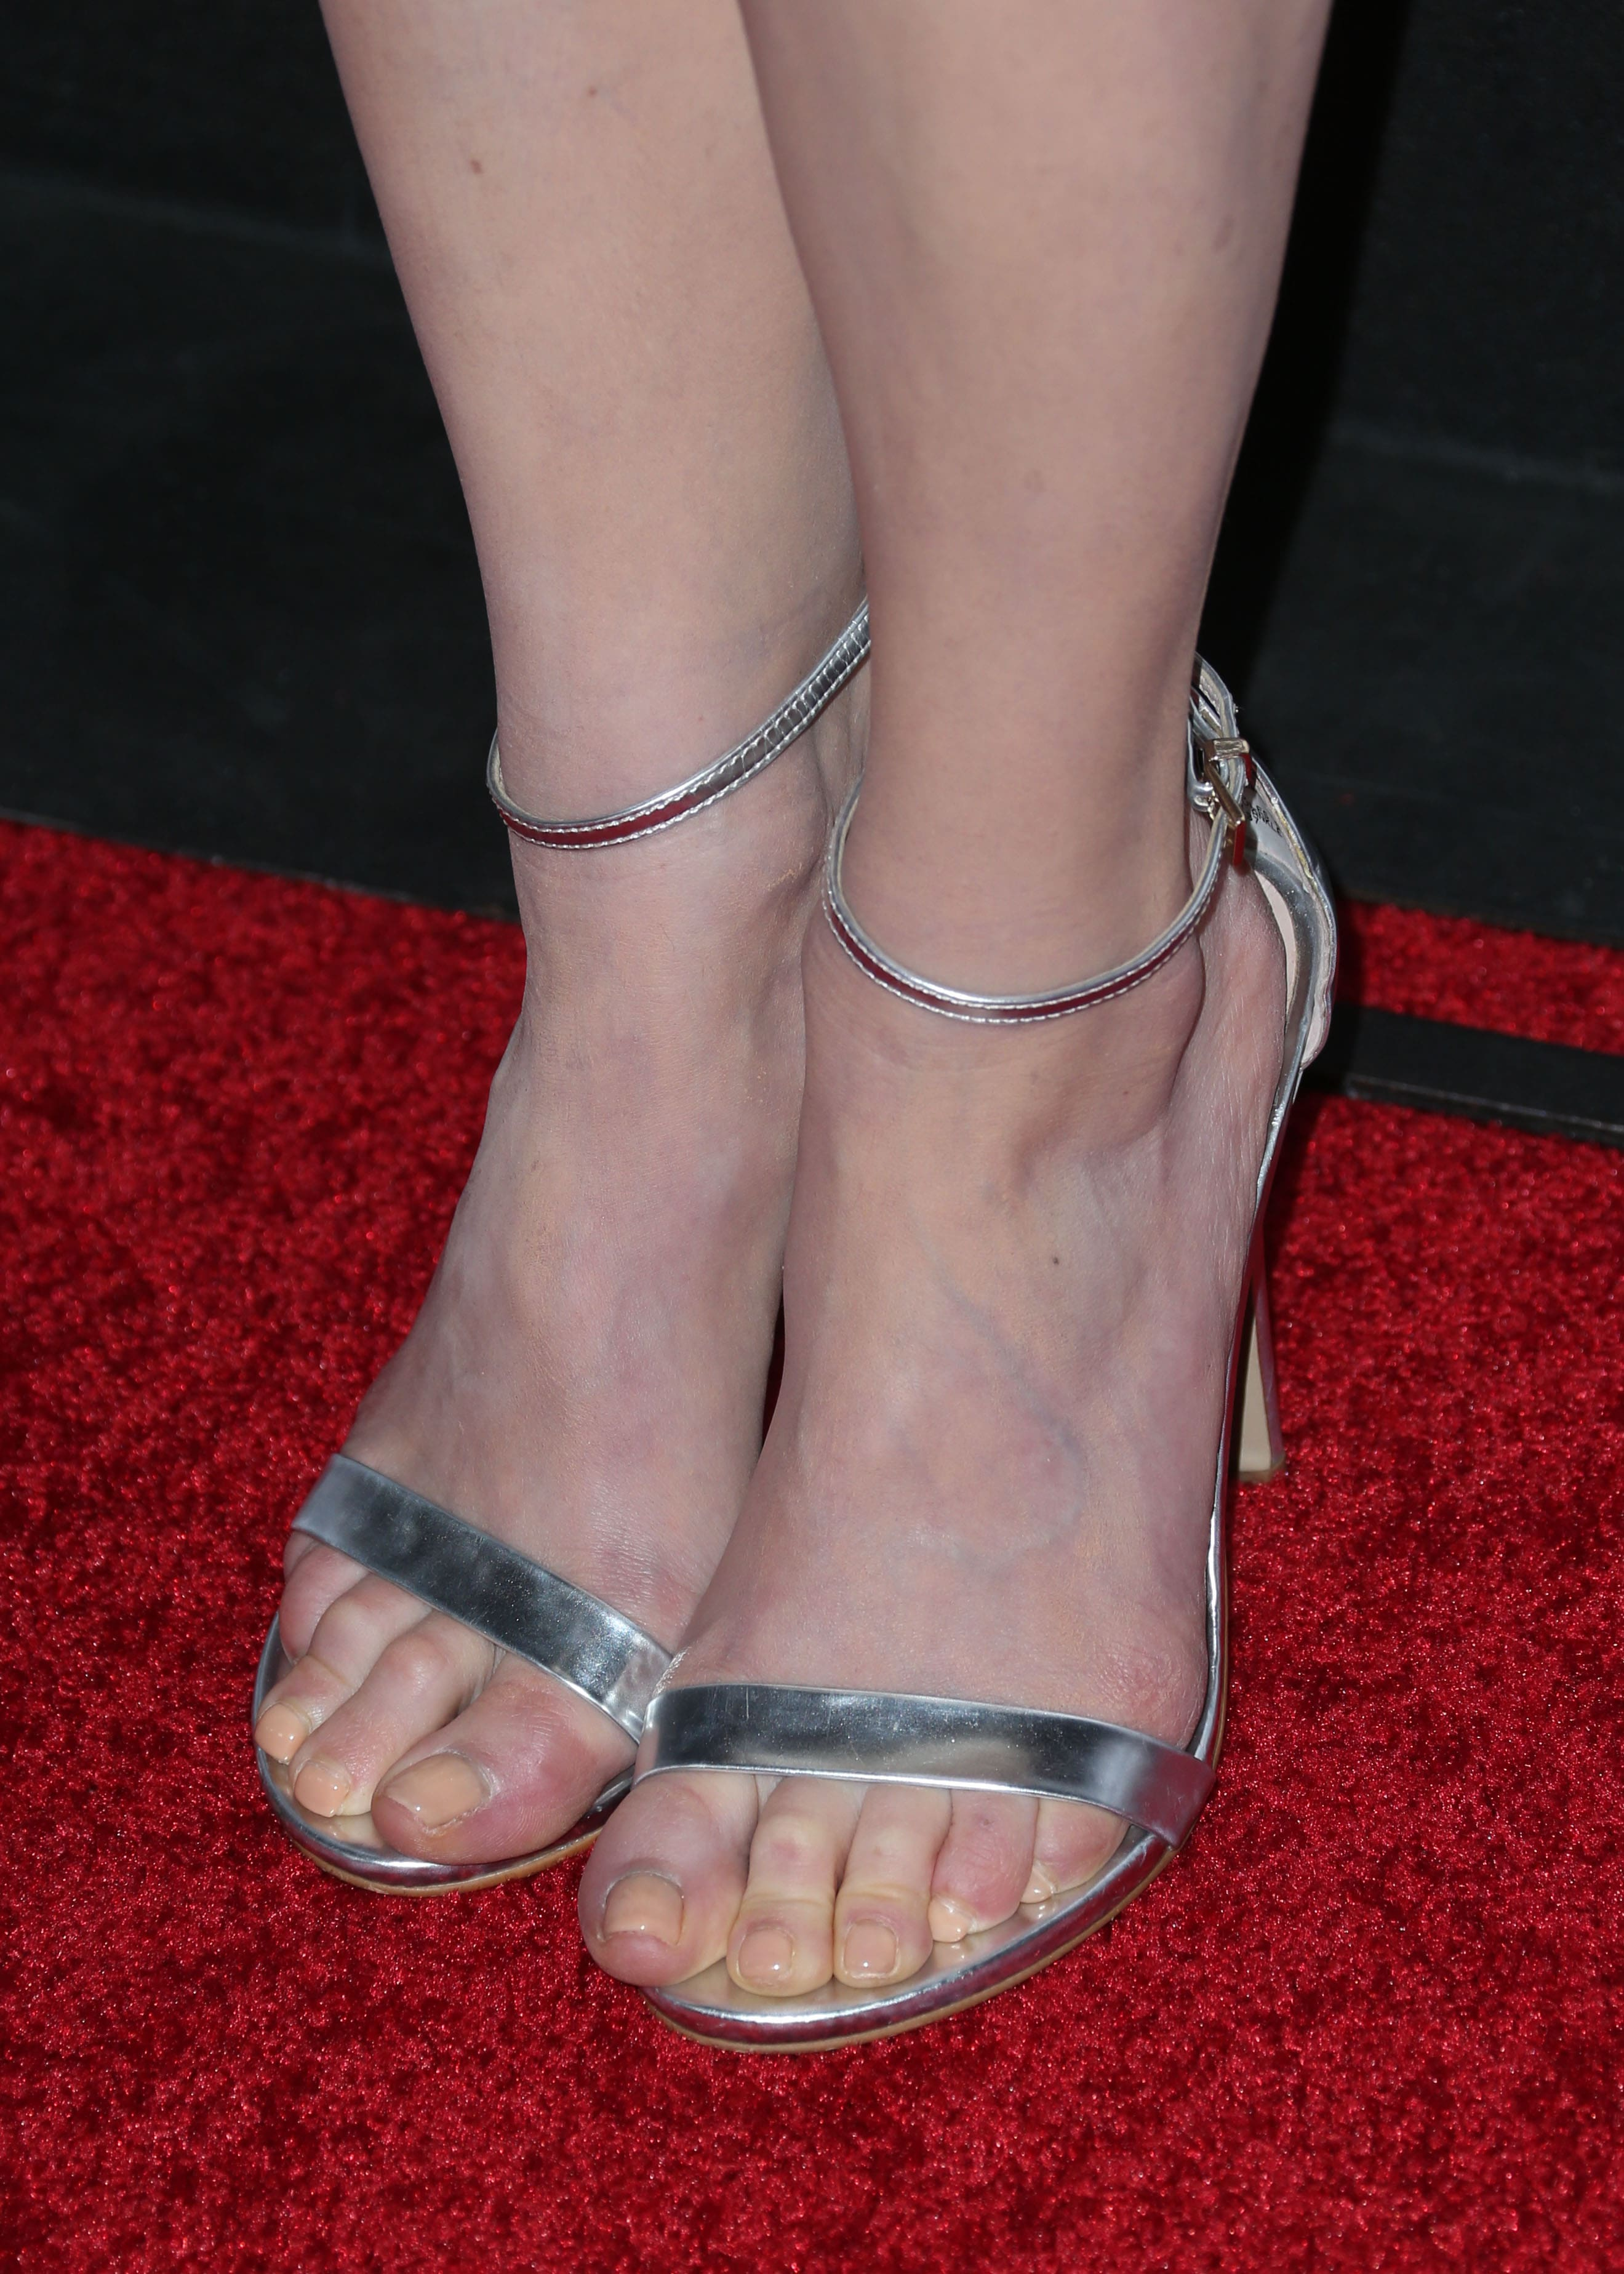 49 Sexy Melissa Rauch Feet Pictures That Will Make Your